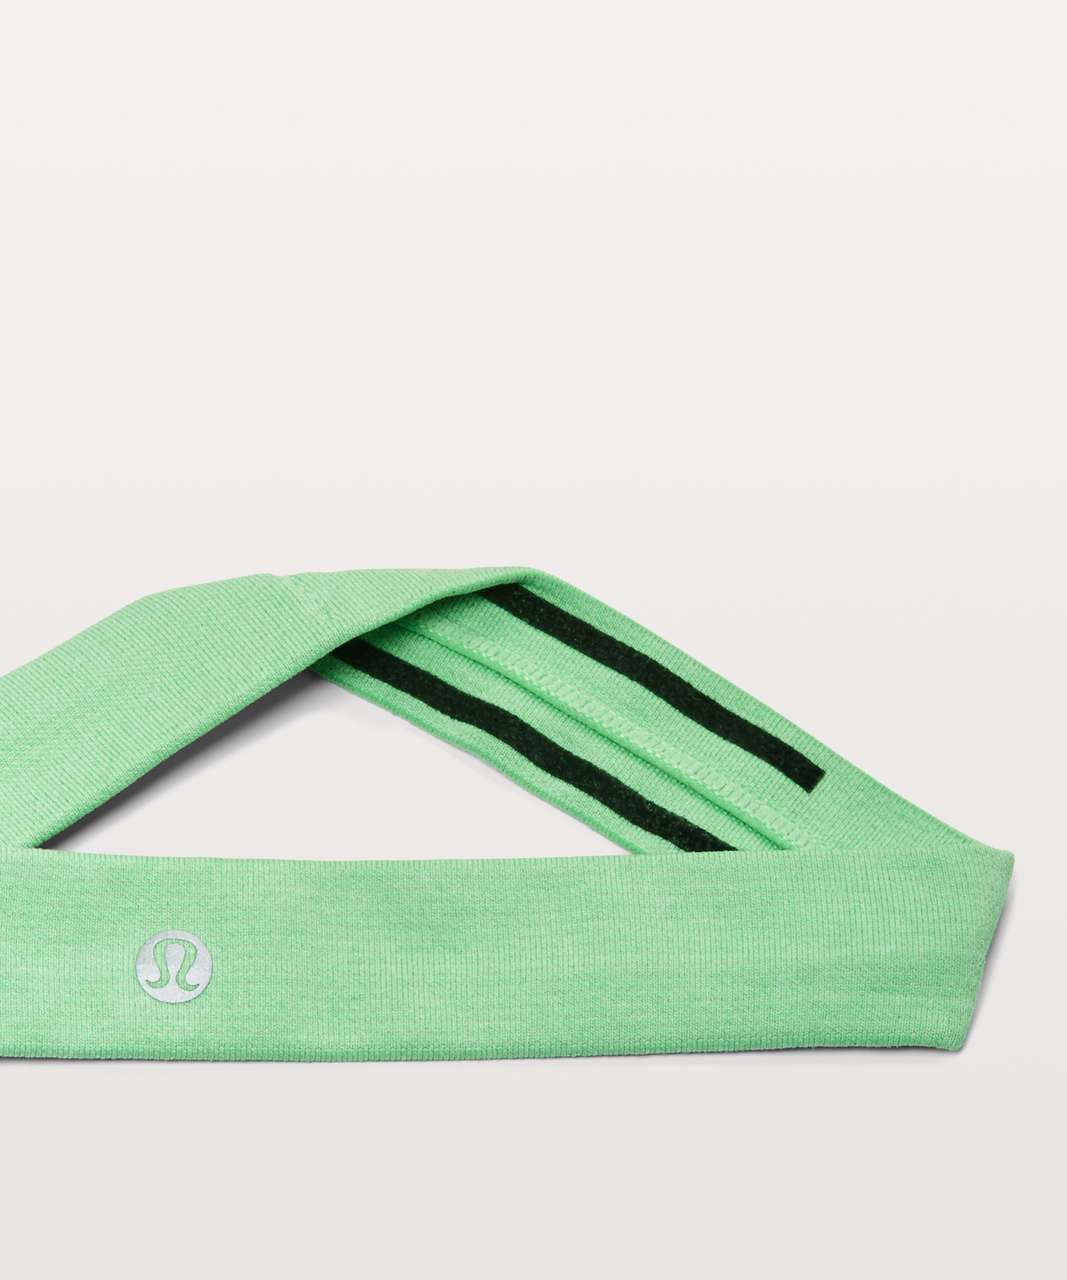 Lululemon Cardio Cross Trainer Headband - Dragonfly / White